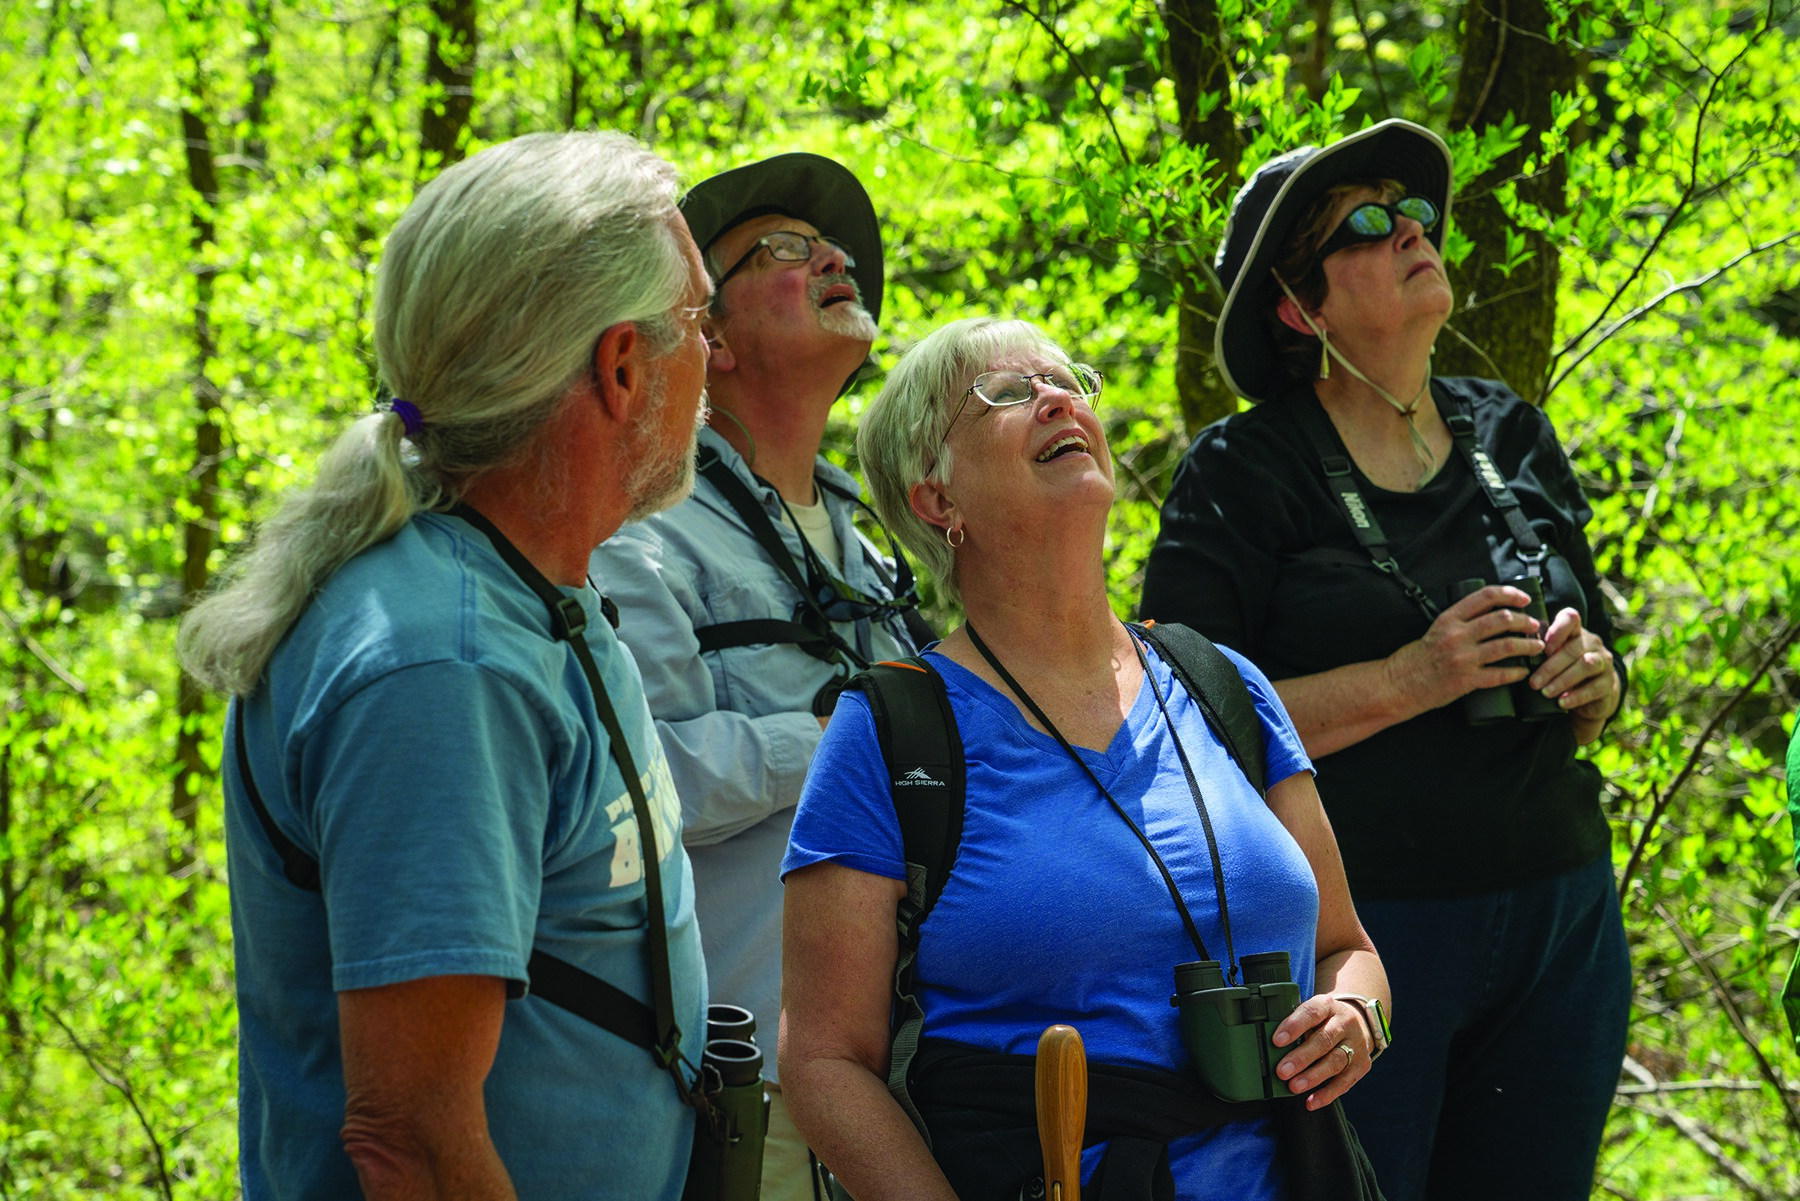 Guide and former biologist Keith Watson (left) leads a birding group on a tour in Great Smoky Mountains National Park. Photo courtesy of Joye Ardyn Durham.